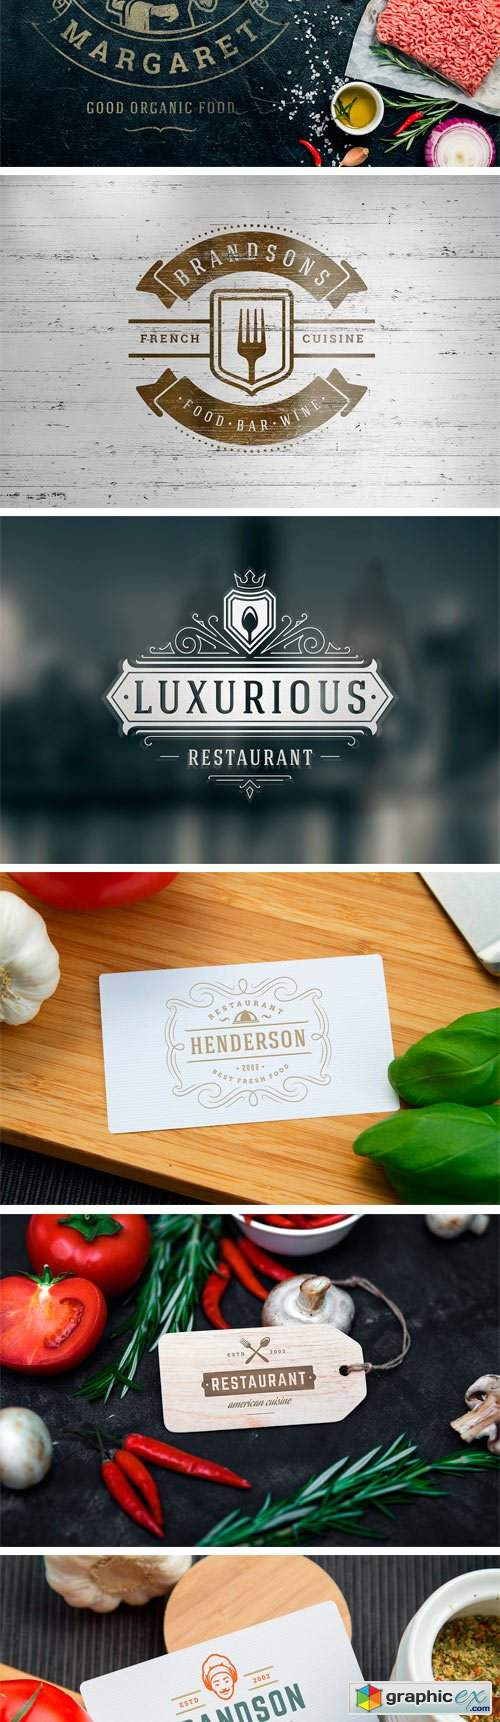 36 Restaurant Logos and Badges 2510728